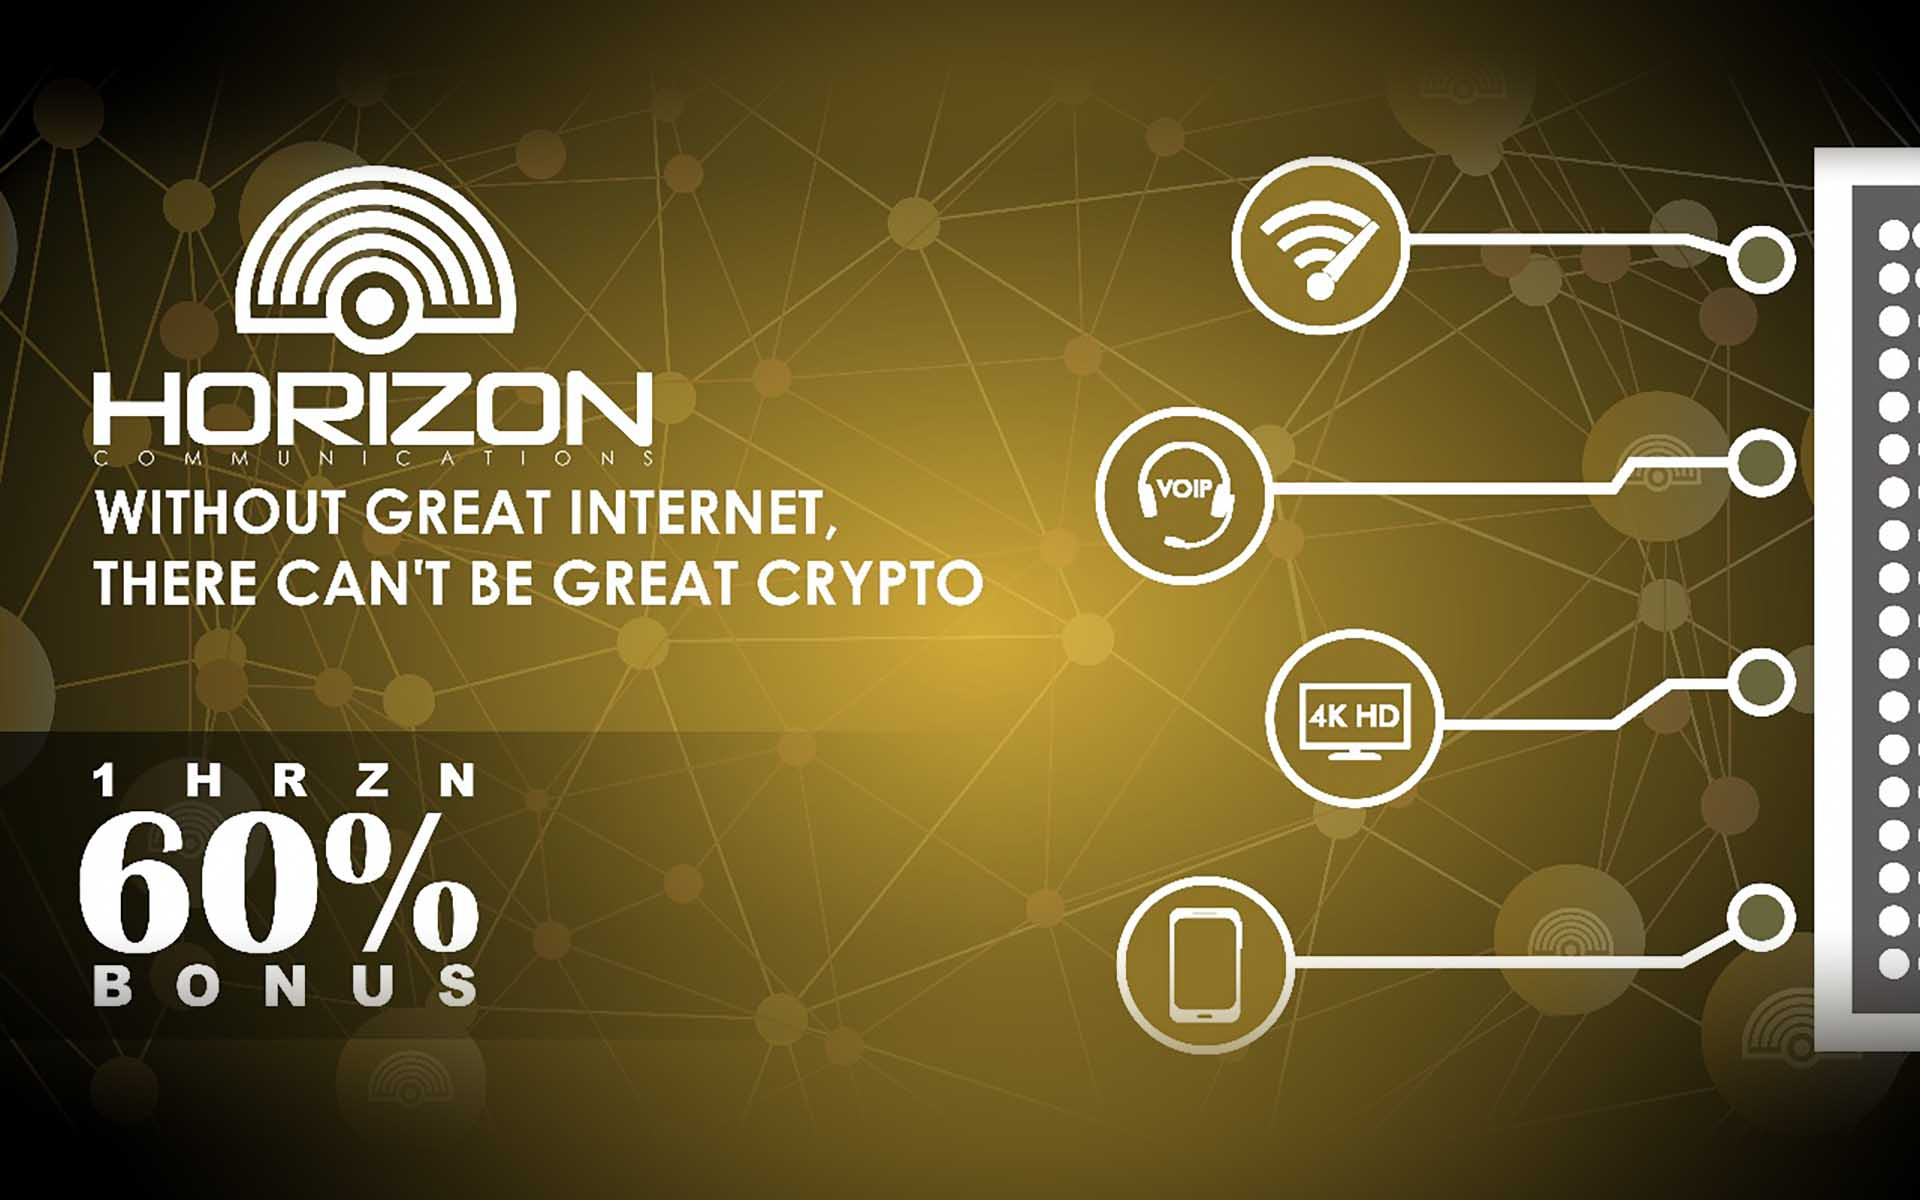 Horizon Pre-ICO Starting March 19 - 60% Discount for Investors